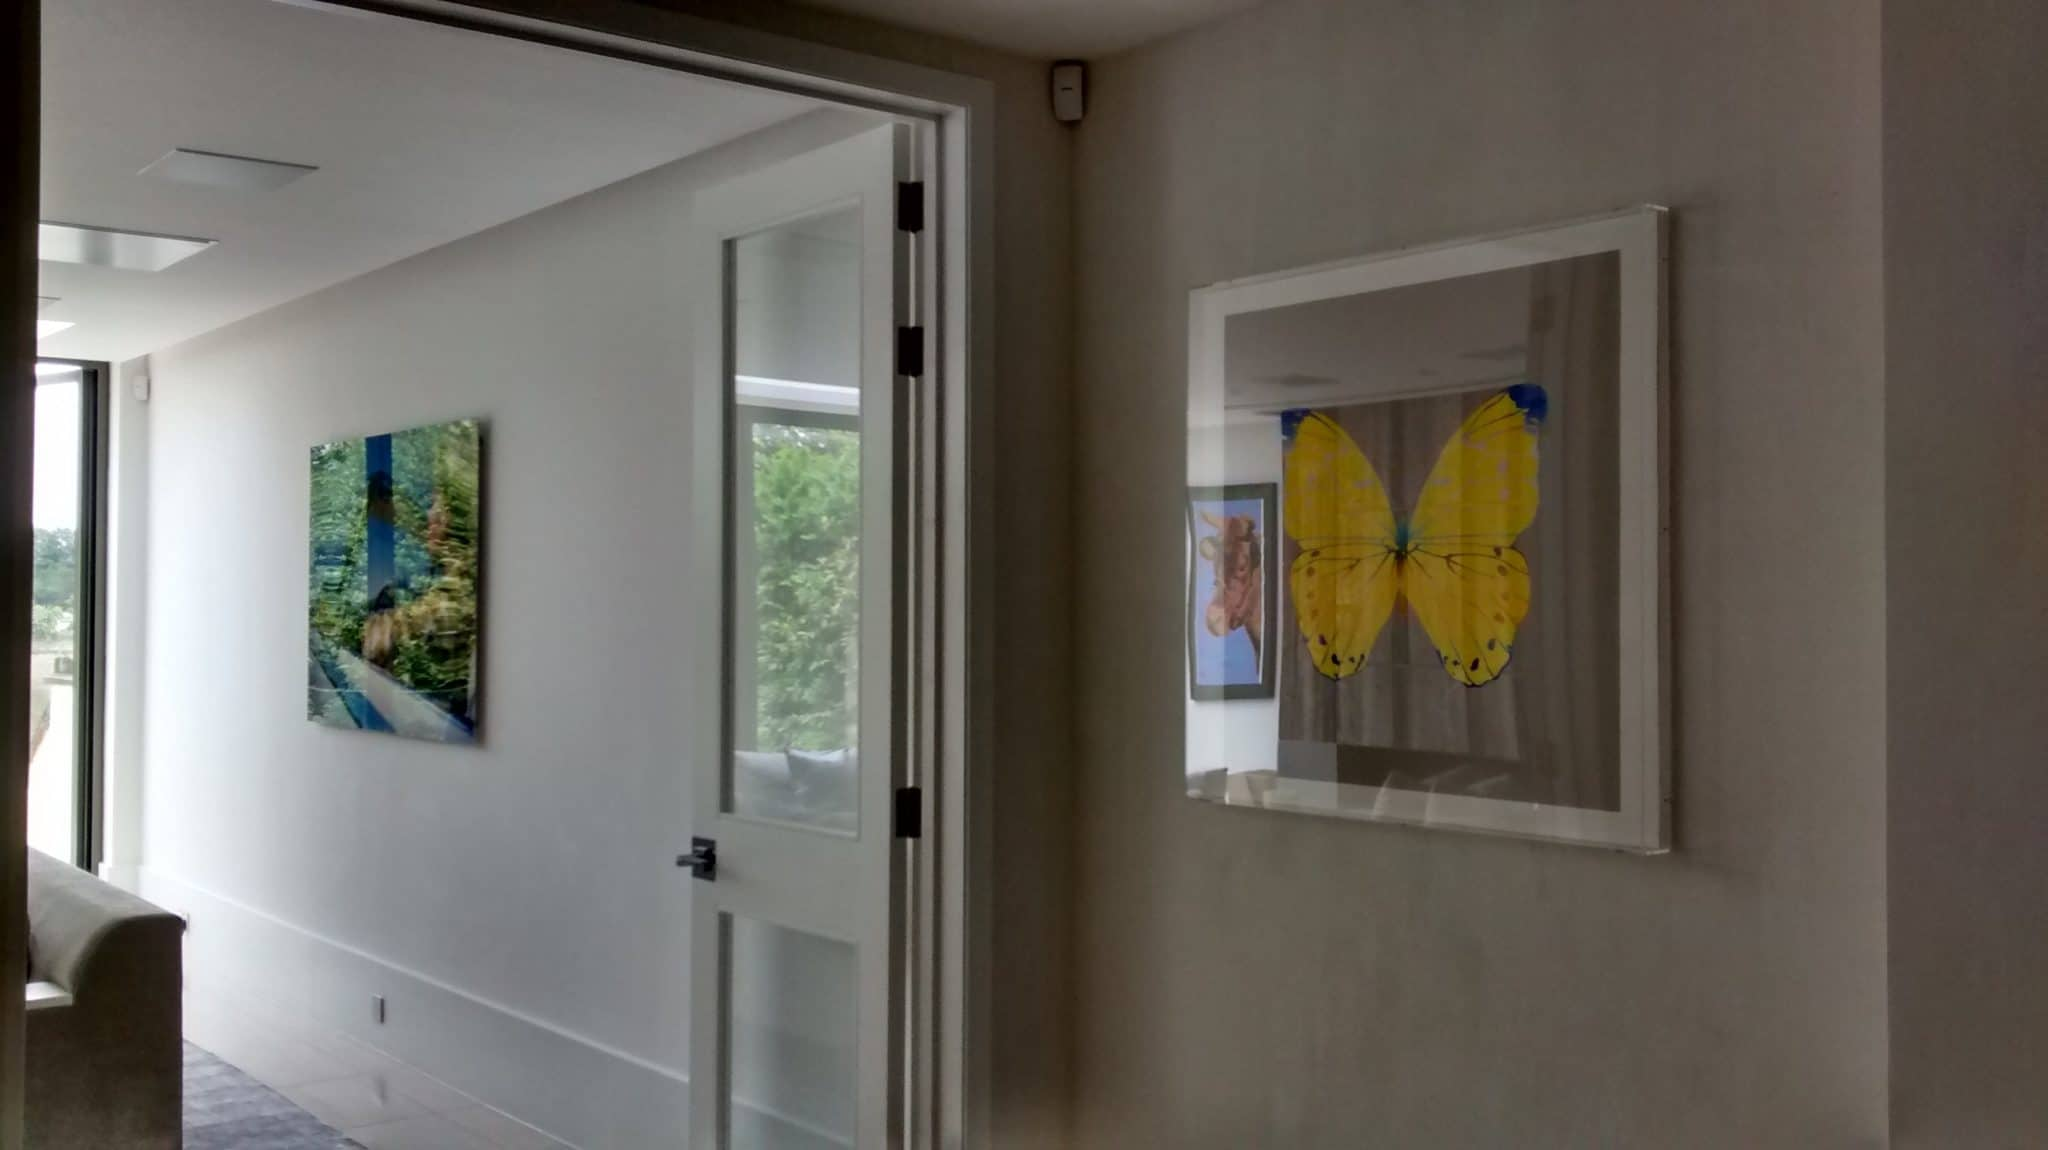 Two similarly sized square pictures, helps the space divided by the doorway flow, creating a more united living space in Horsham.